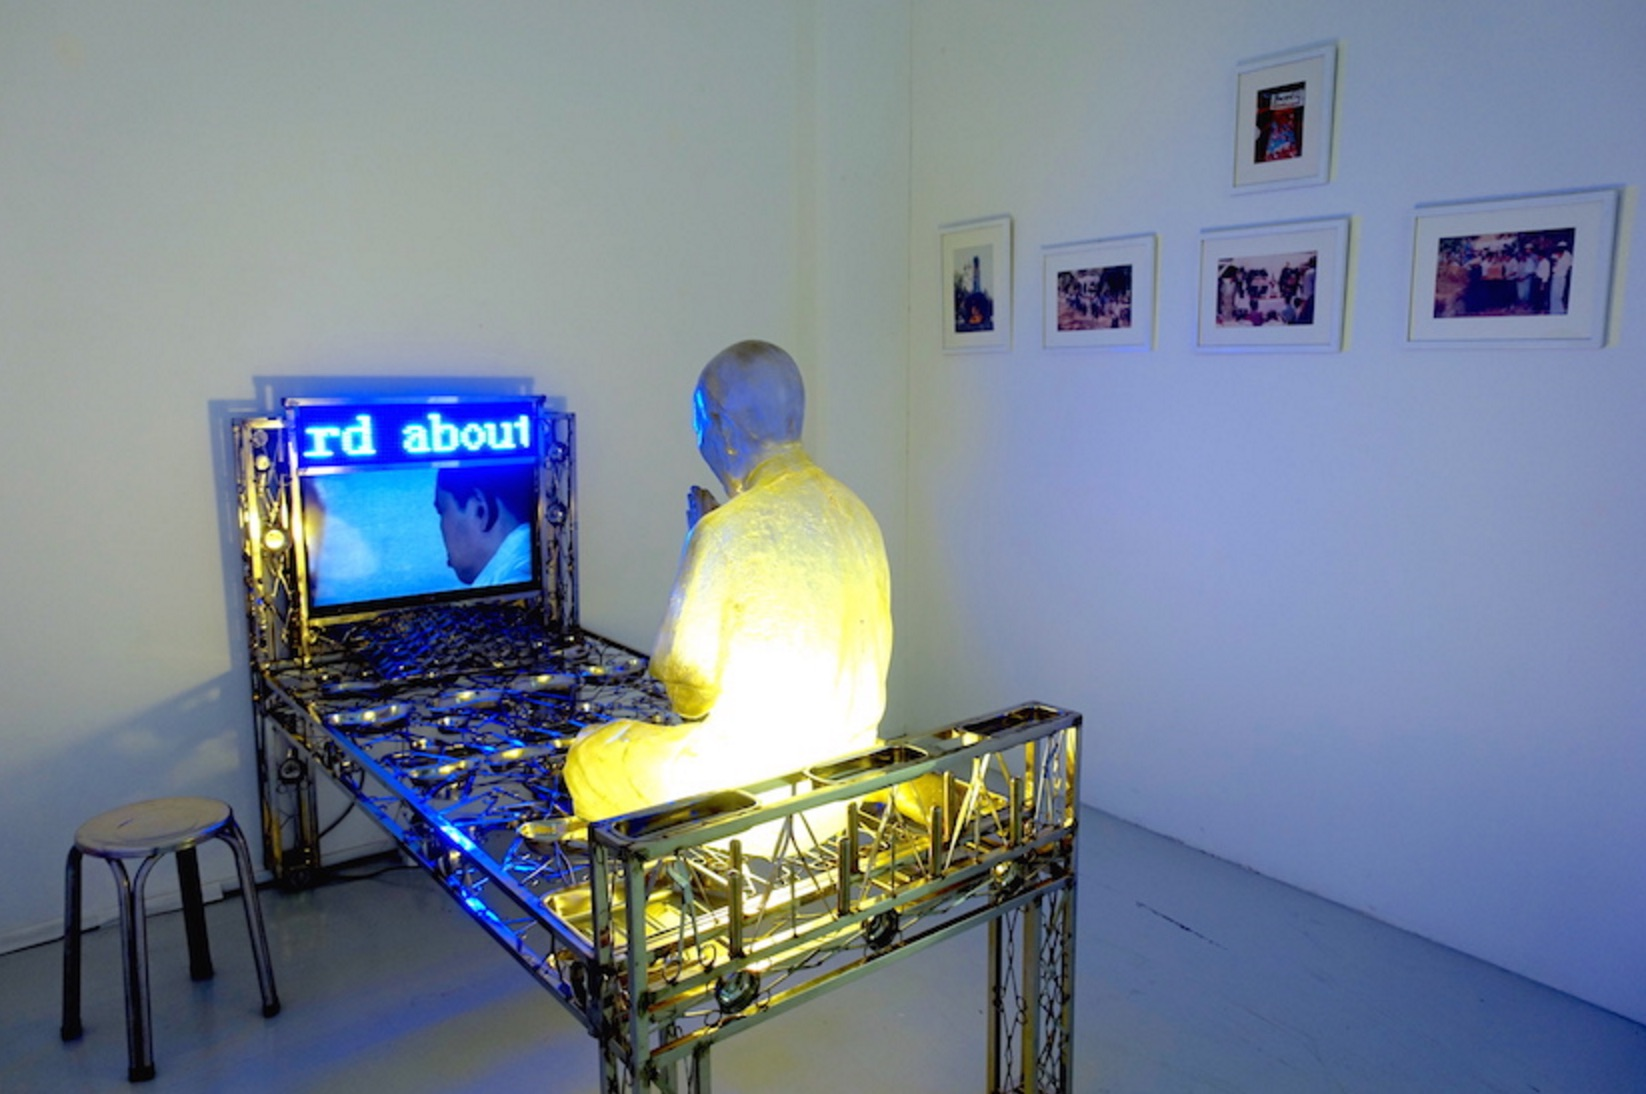 Htein Lin, Monument To My Father, 2015-16, surgical instruments and trays, LED scrolling sign, video, photographs, fibreglass, steel chair, dimensions variable